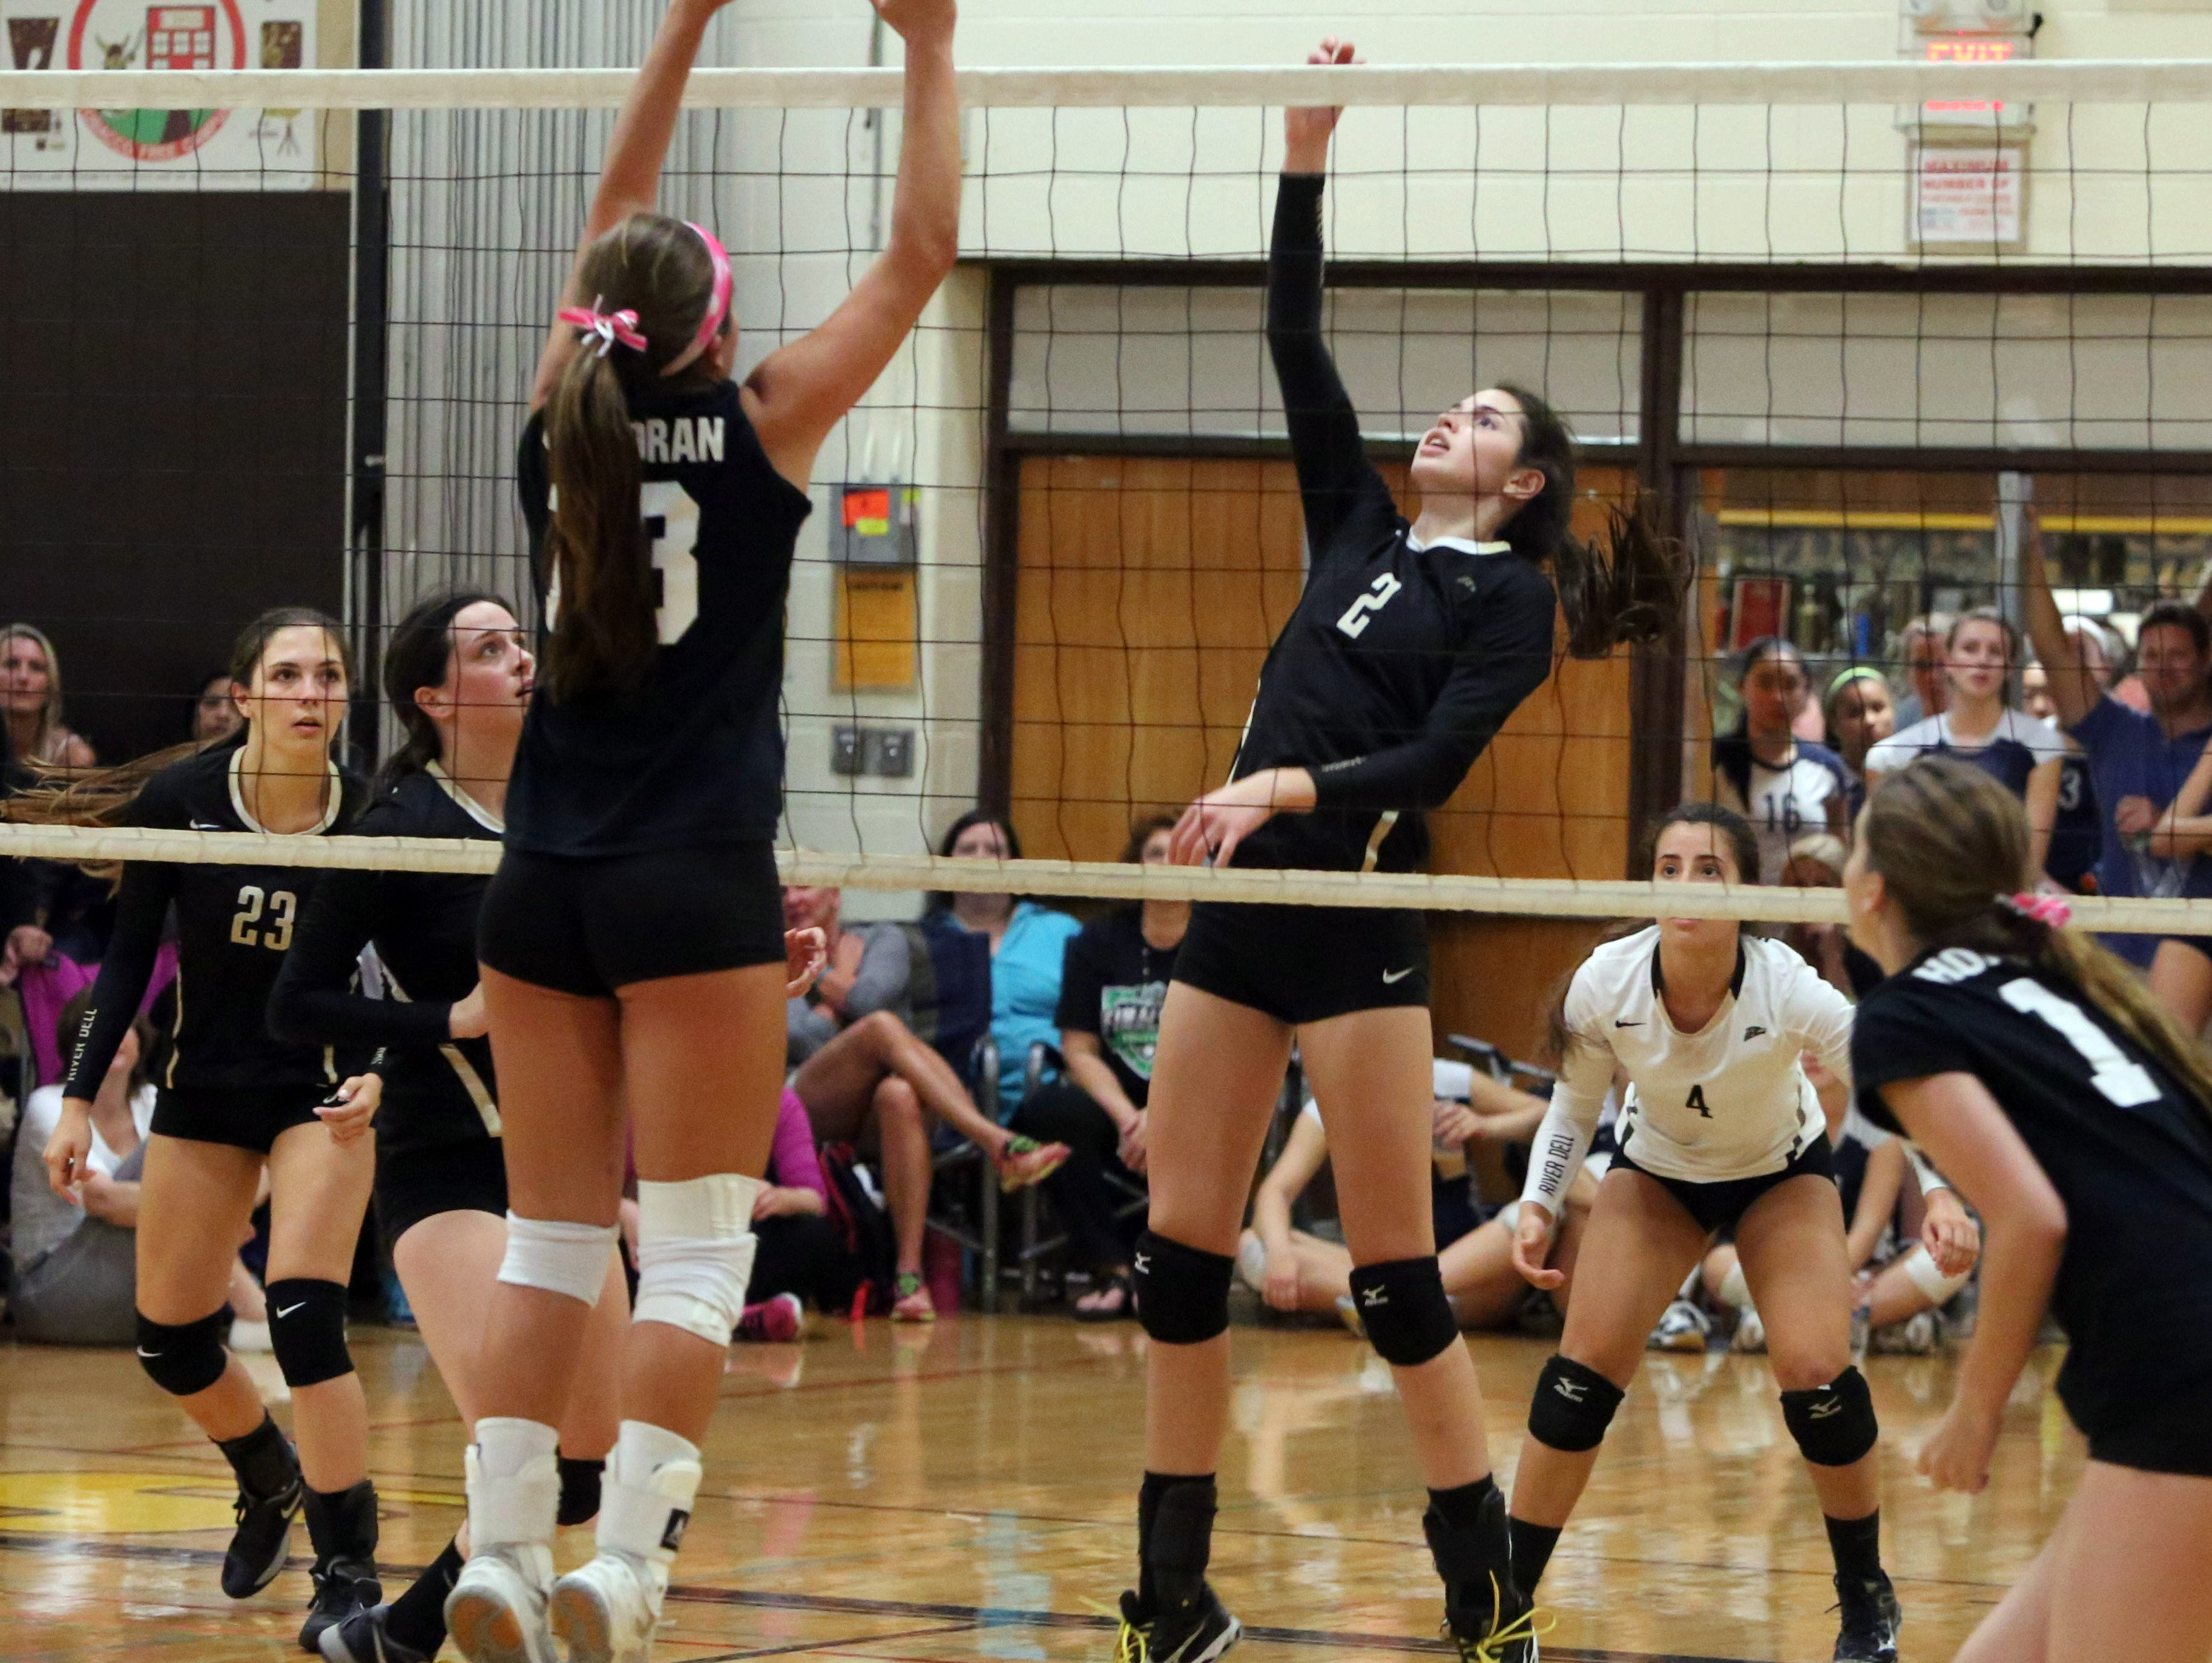 River Dell's Christine Woods puts up a shot over Demarest's Victoria Corcoran as the Clarkstown South High School held their volleyball tournament for area teams at the school, Sept. 26, 2015.